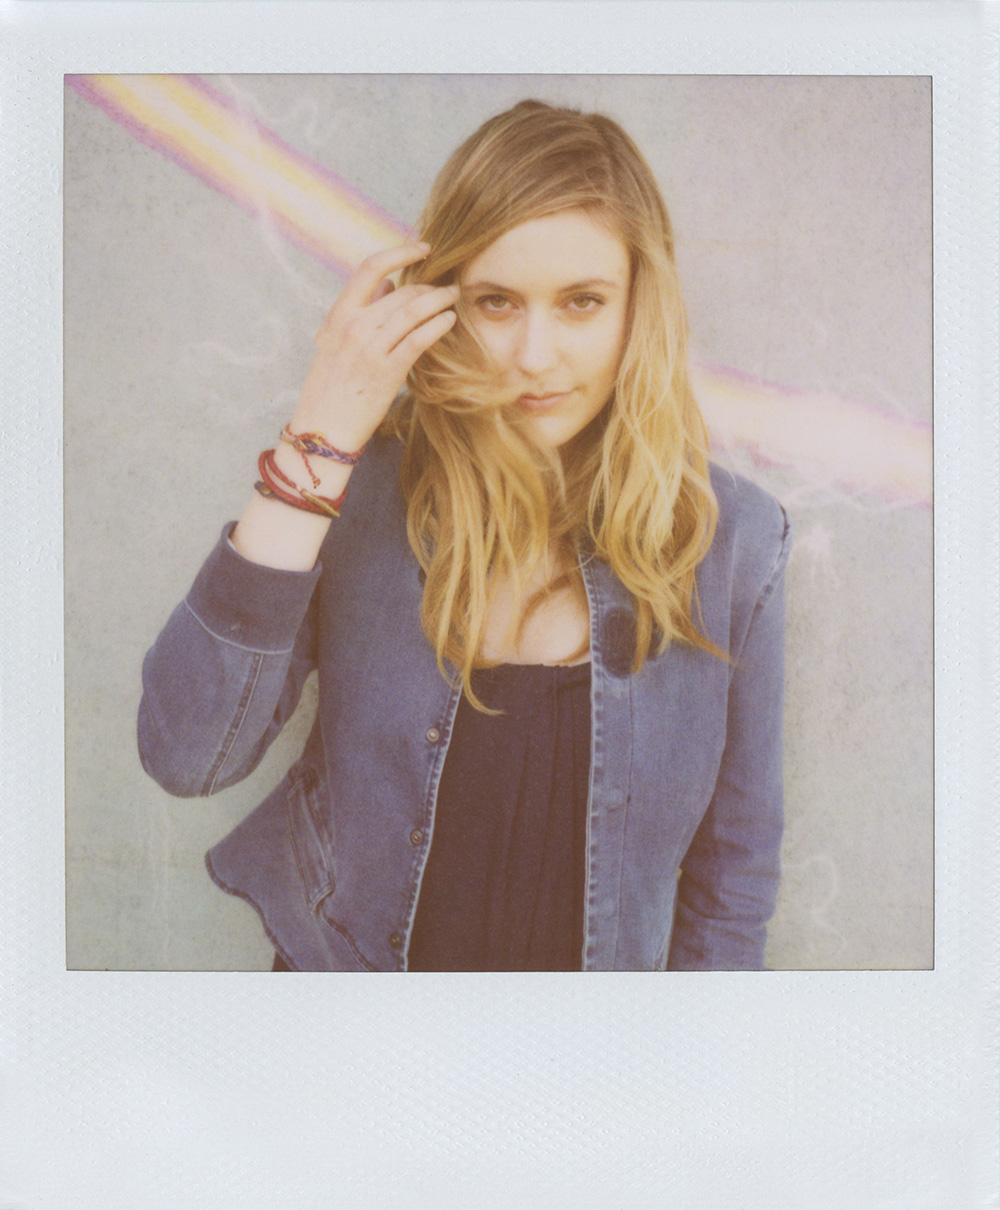 band-of-outsiders-greta-gerwig-polaroids-02